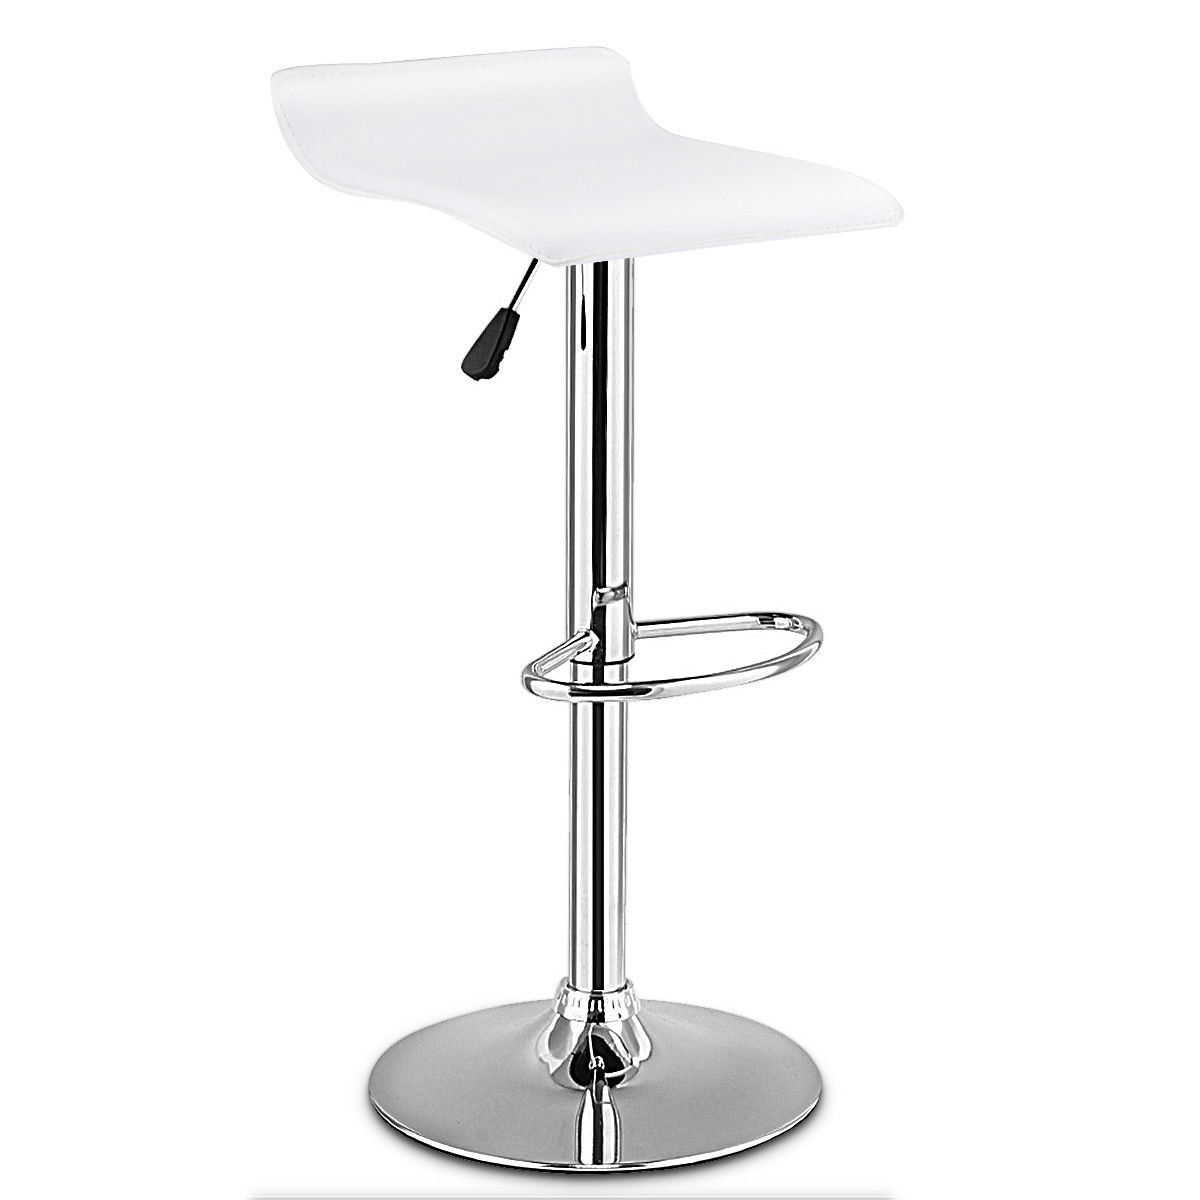 Miraculous Amazon Com New Swivel Bar Stool Adjustable Pu Leather Pabps2019 Chair Design Images Pabps2019Com